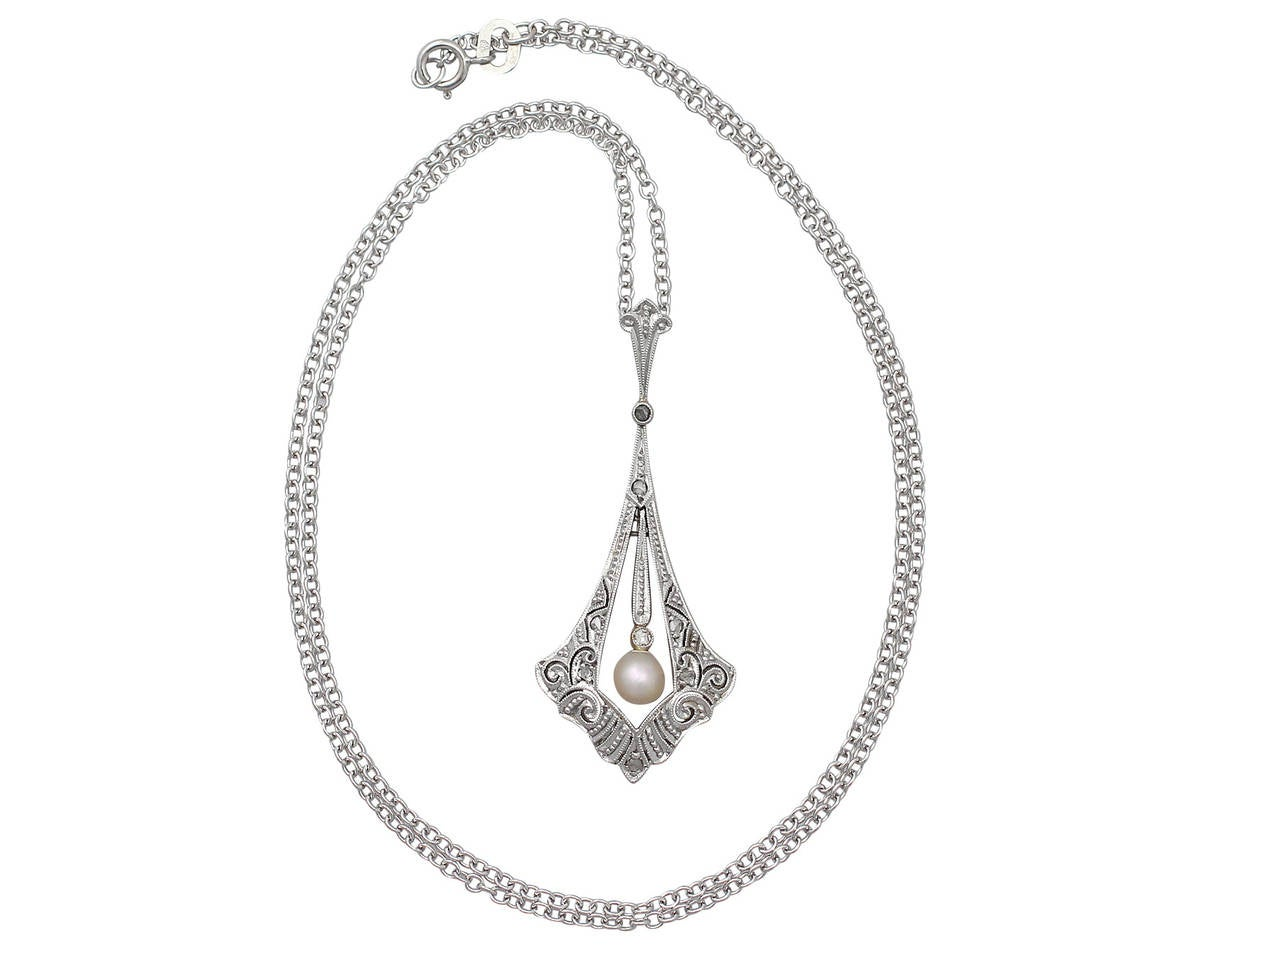 A fine and impressive antique 0.10 carat diamond and pearl 14 karat yellow gold, platinum set pendant; part of our diverse antique diamond jewelry and estate jewelry collections  This impressive diamond and pearl pendant has been crafted in 14k